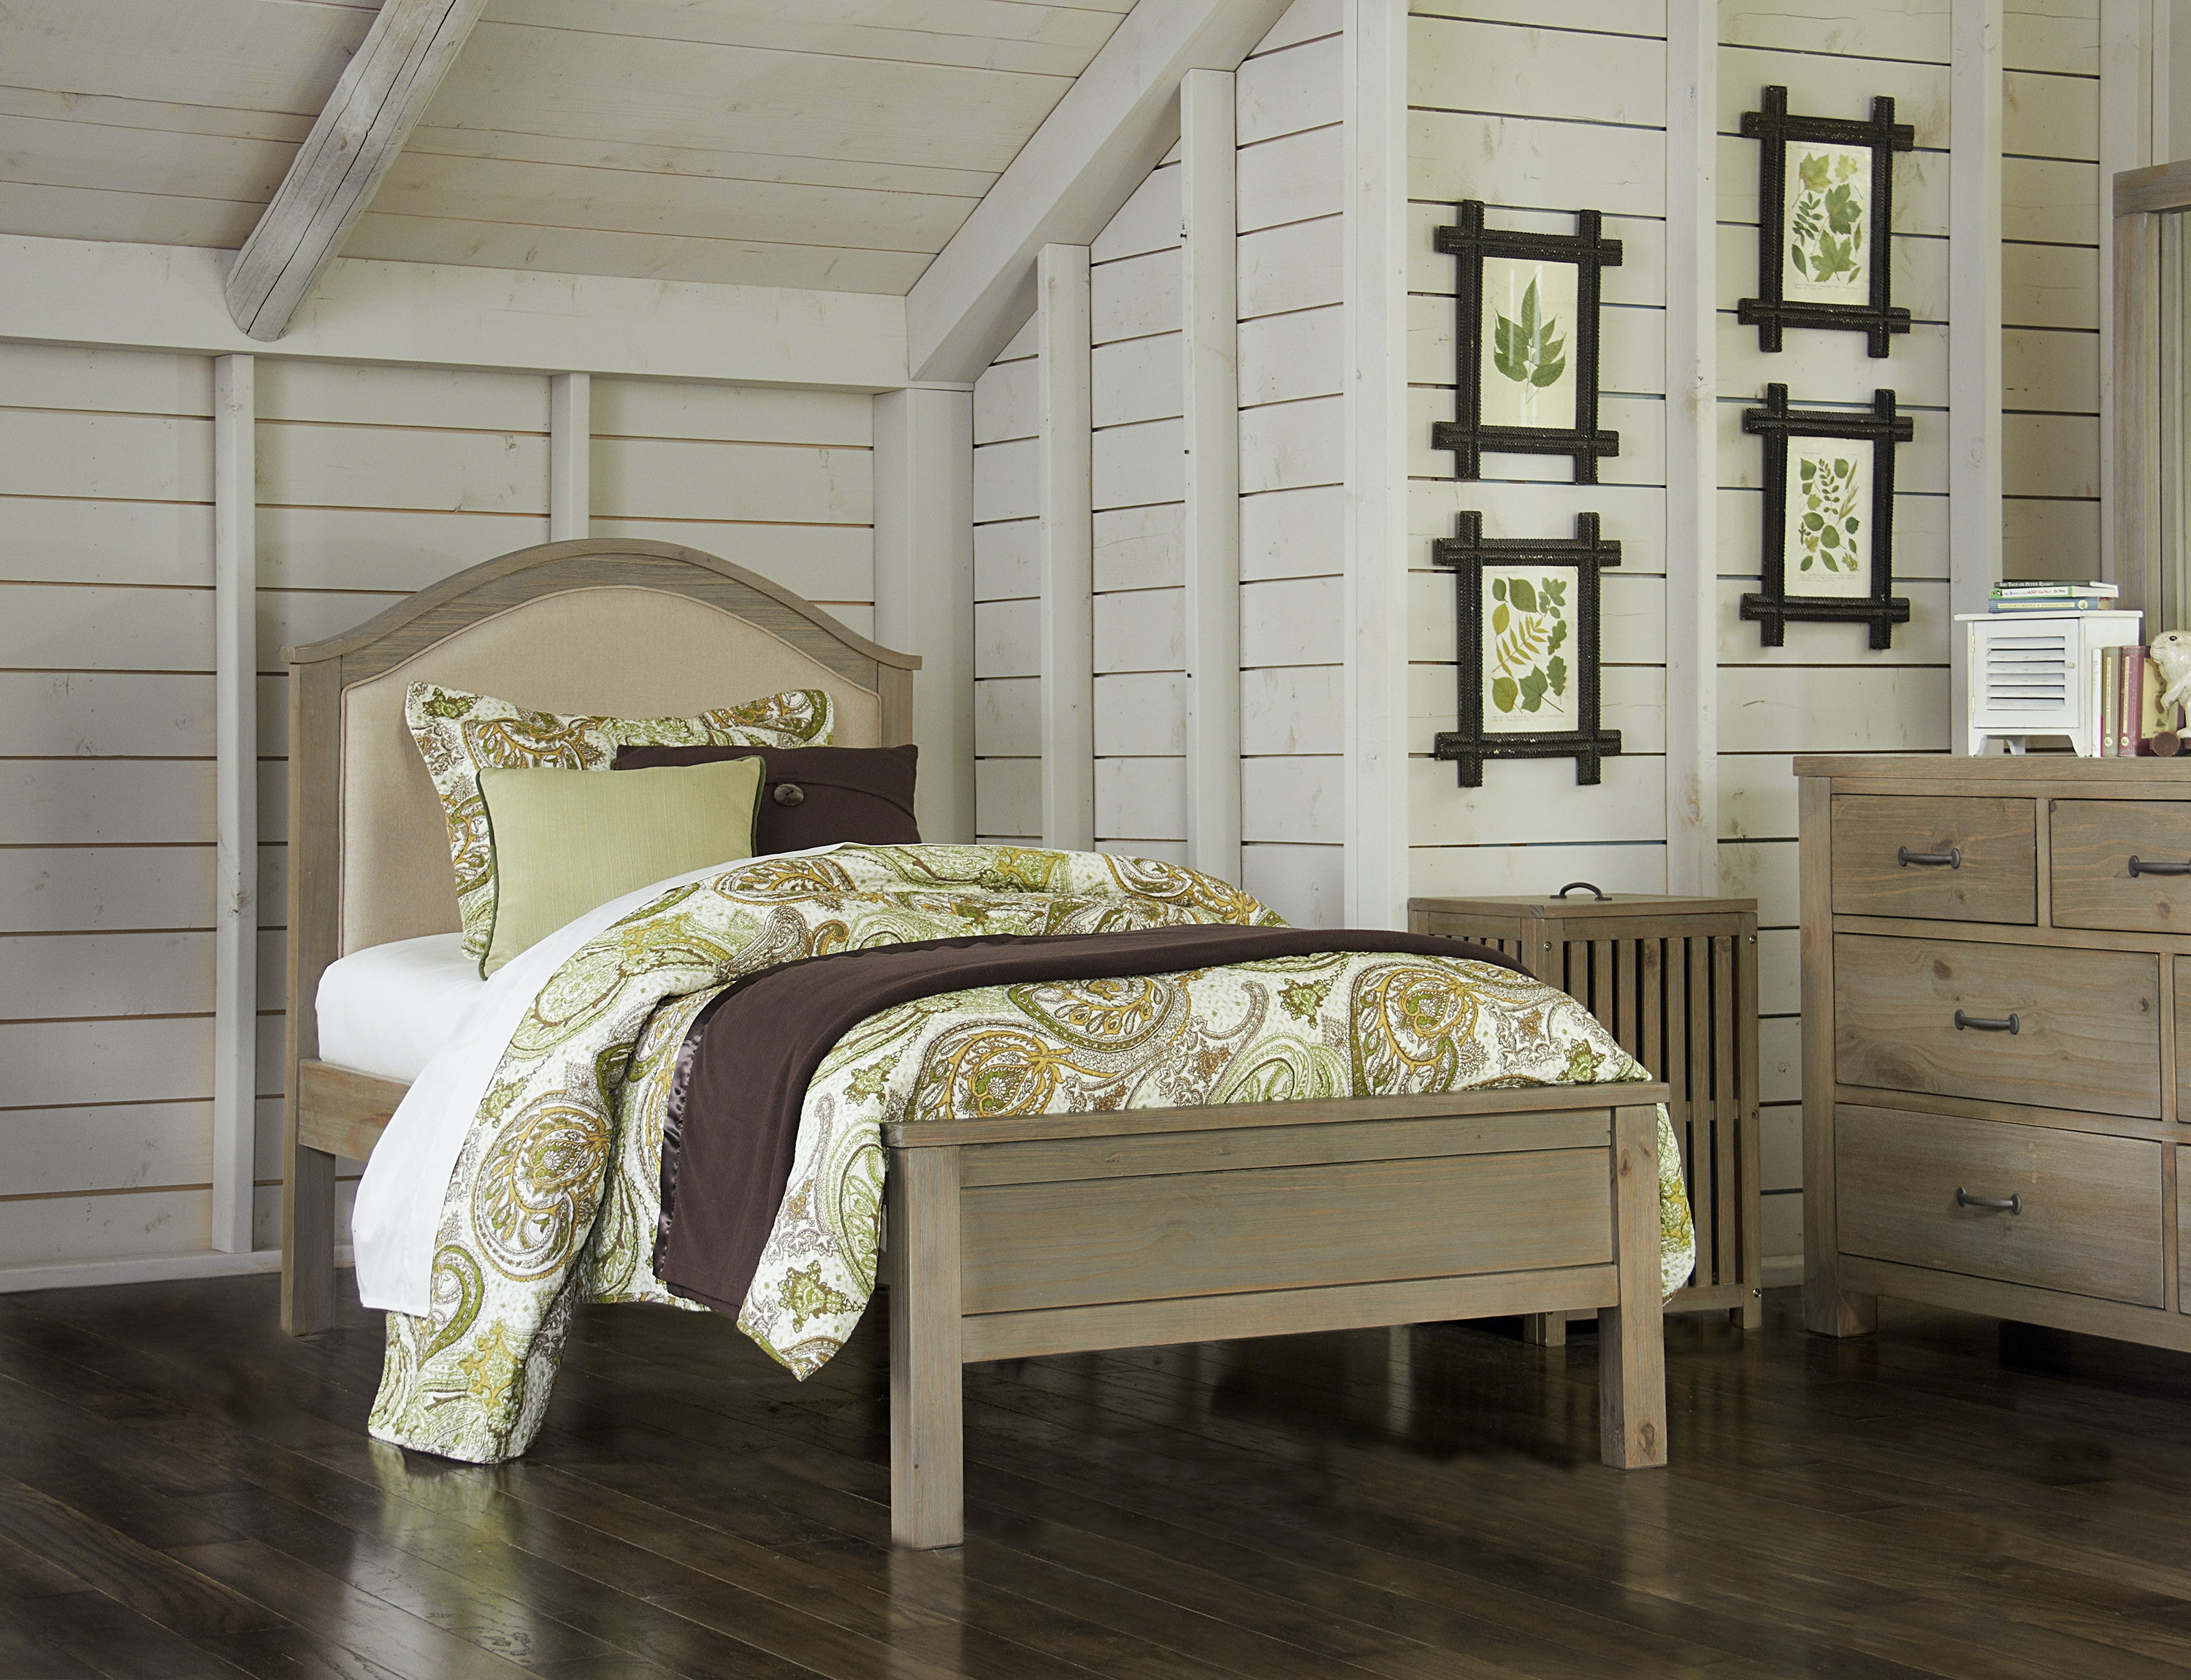 Superbe Hillsdale Kids And Teen Youth Highlands Bed Side Rails 10005B At Aaronu0027s  Fine Furniture